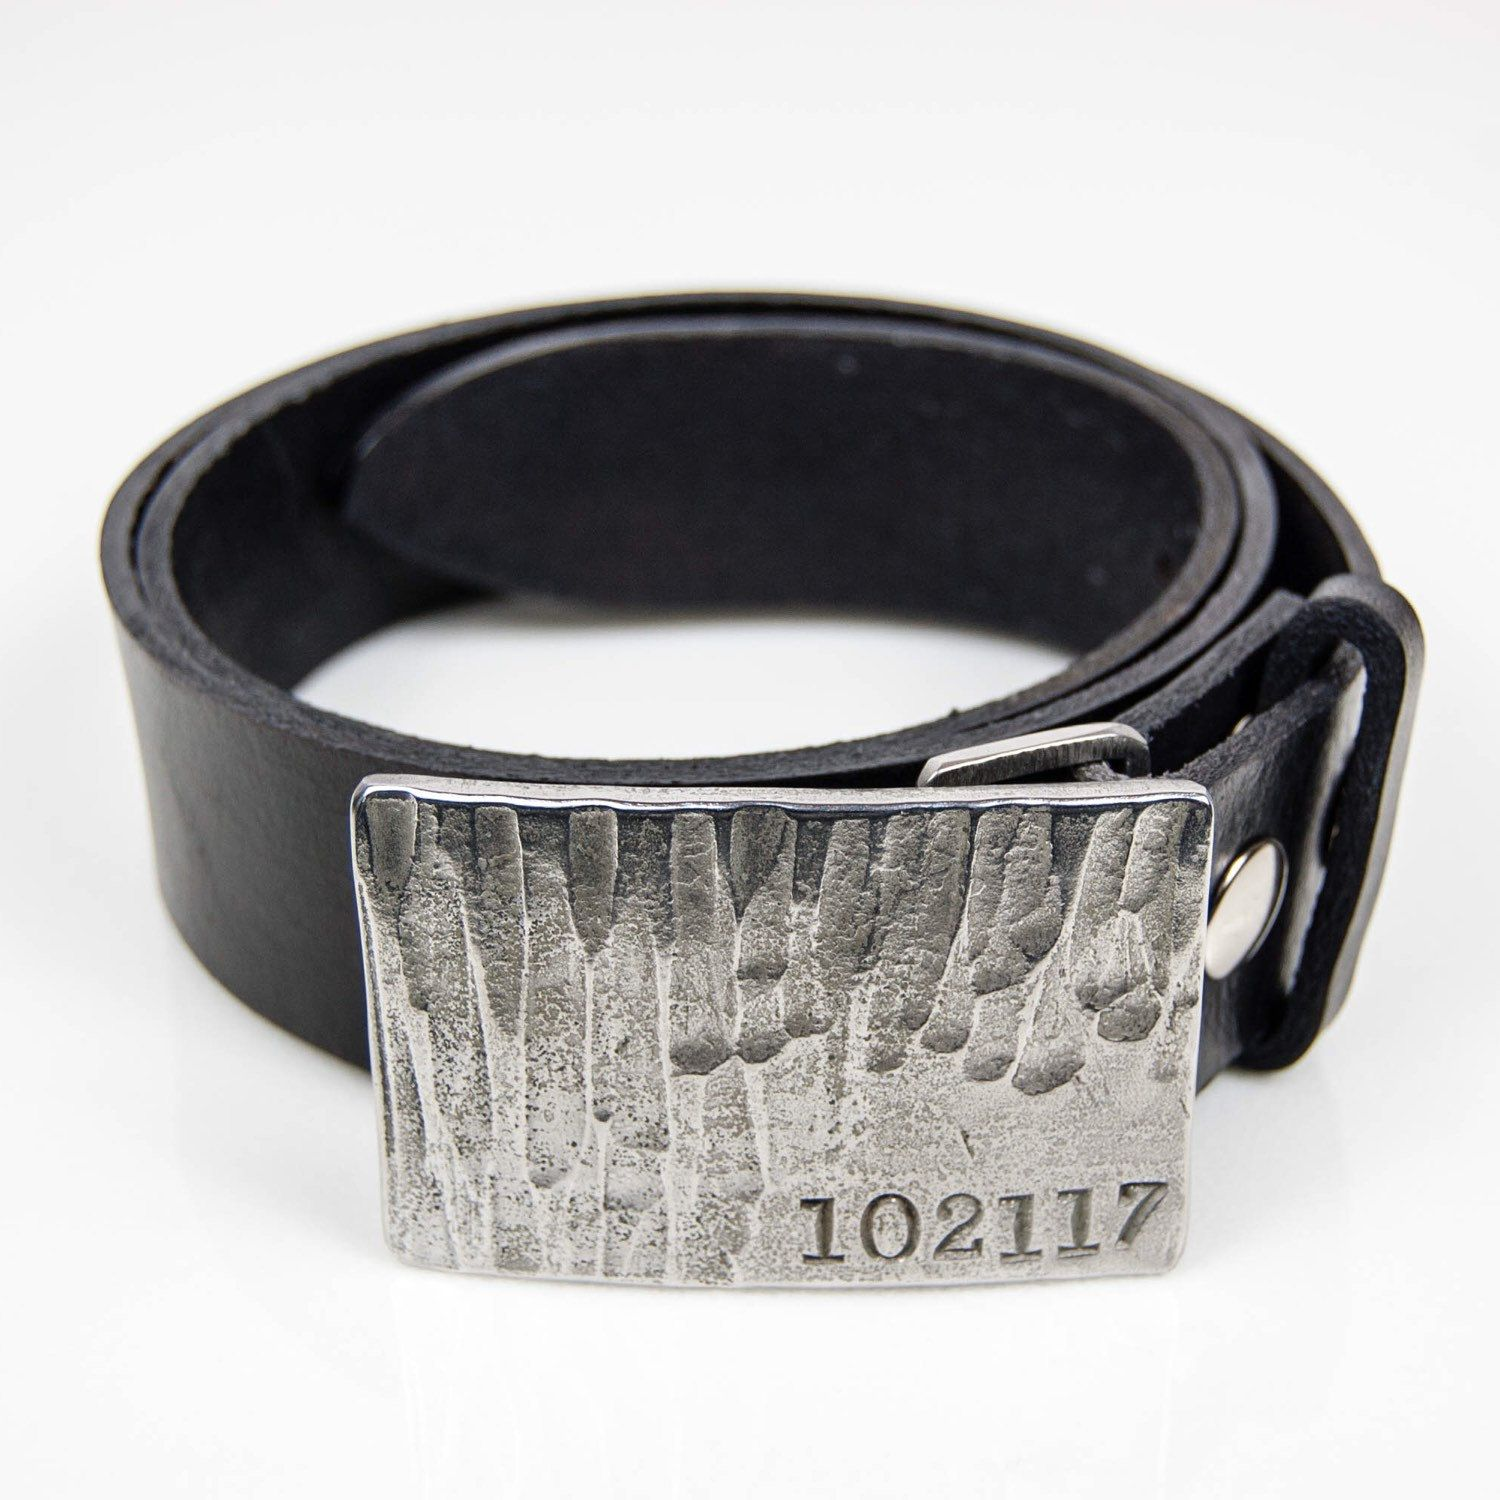 Initial Stamped Stainless Steel Buckle With Hammered Texture